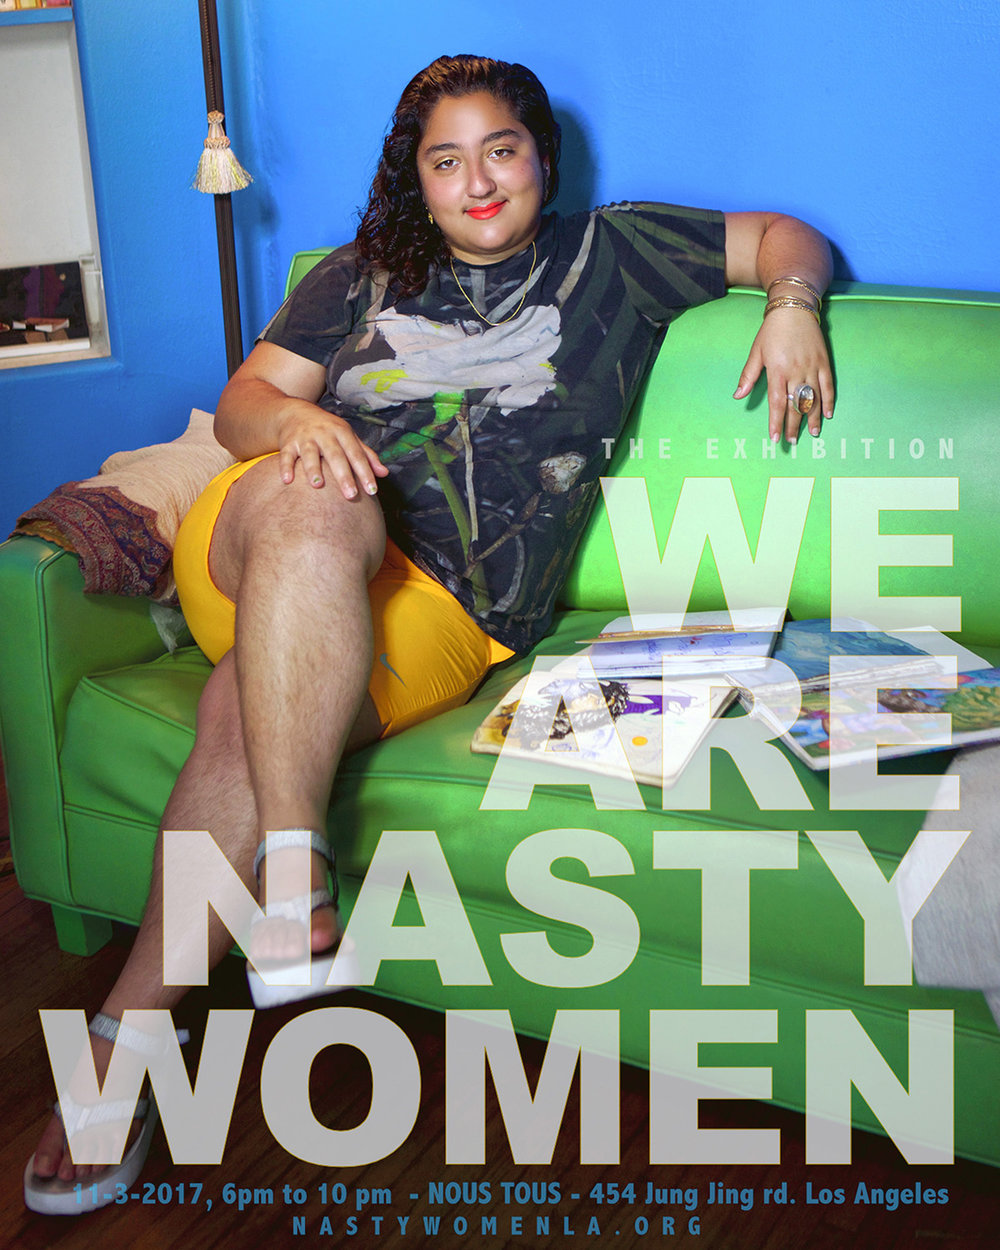 Paradise from the  We are Nasty Women  campaign. Courtesy of the artist.